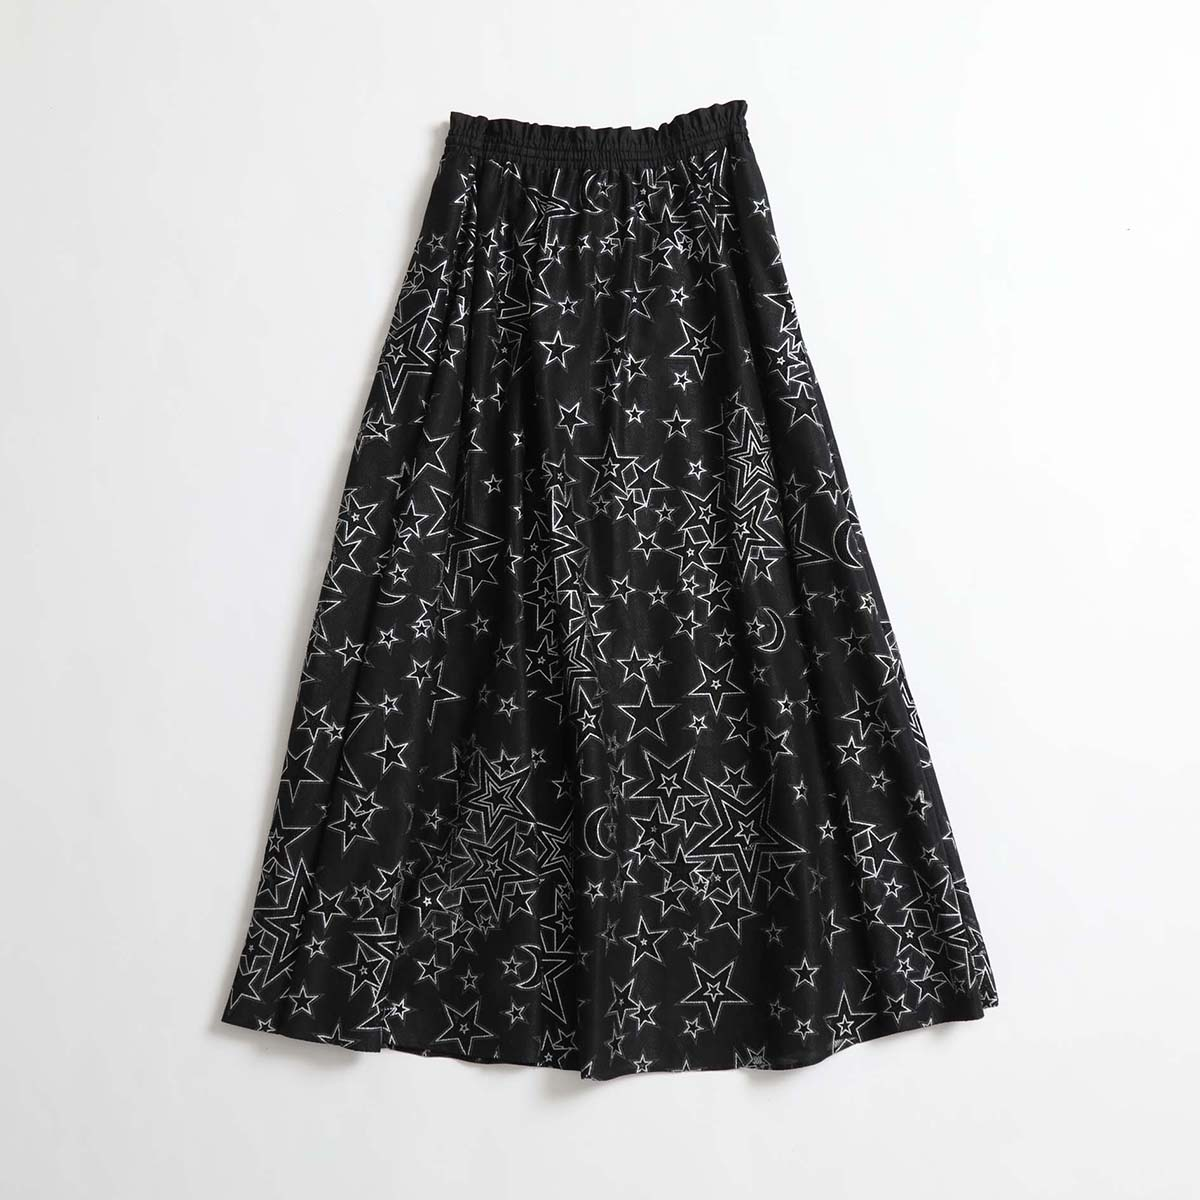 『blanche』 long skirt BLACK画像